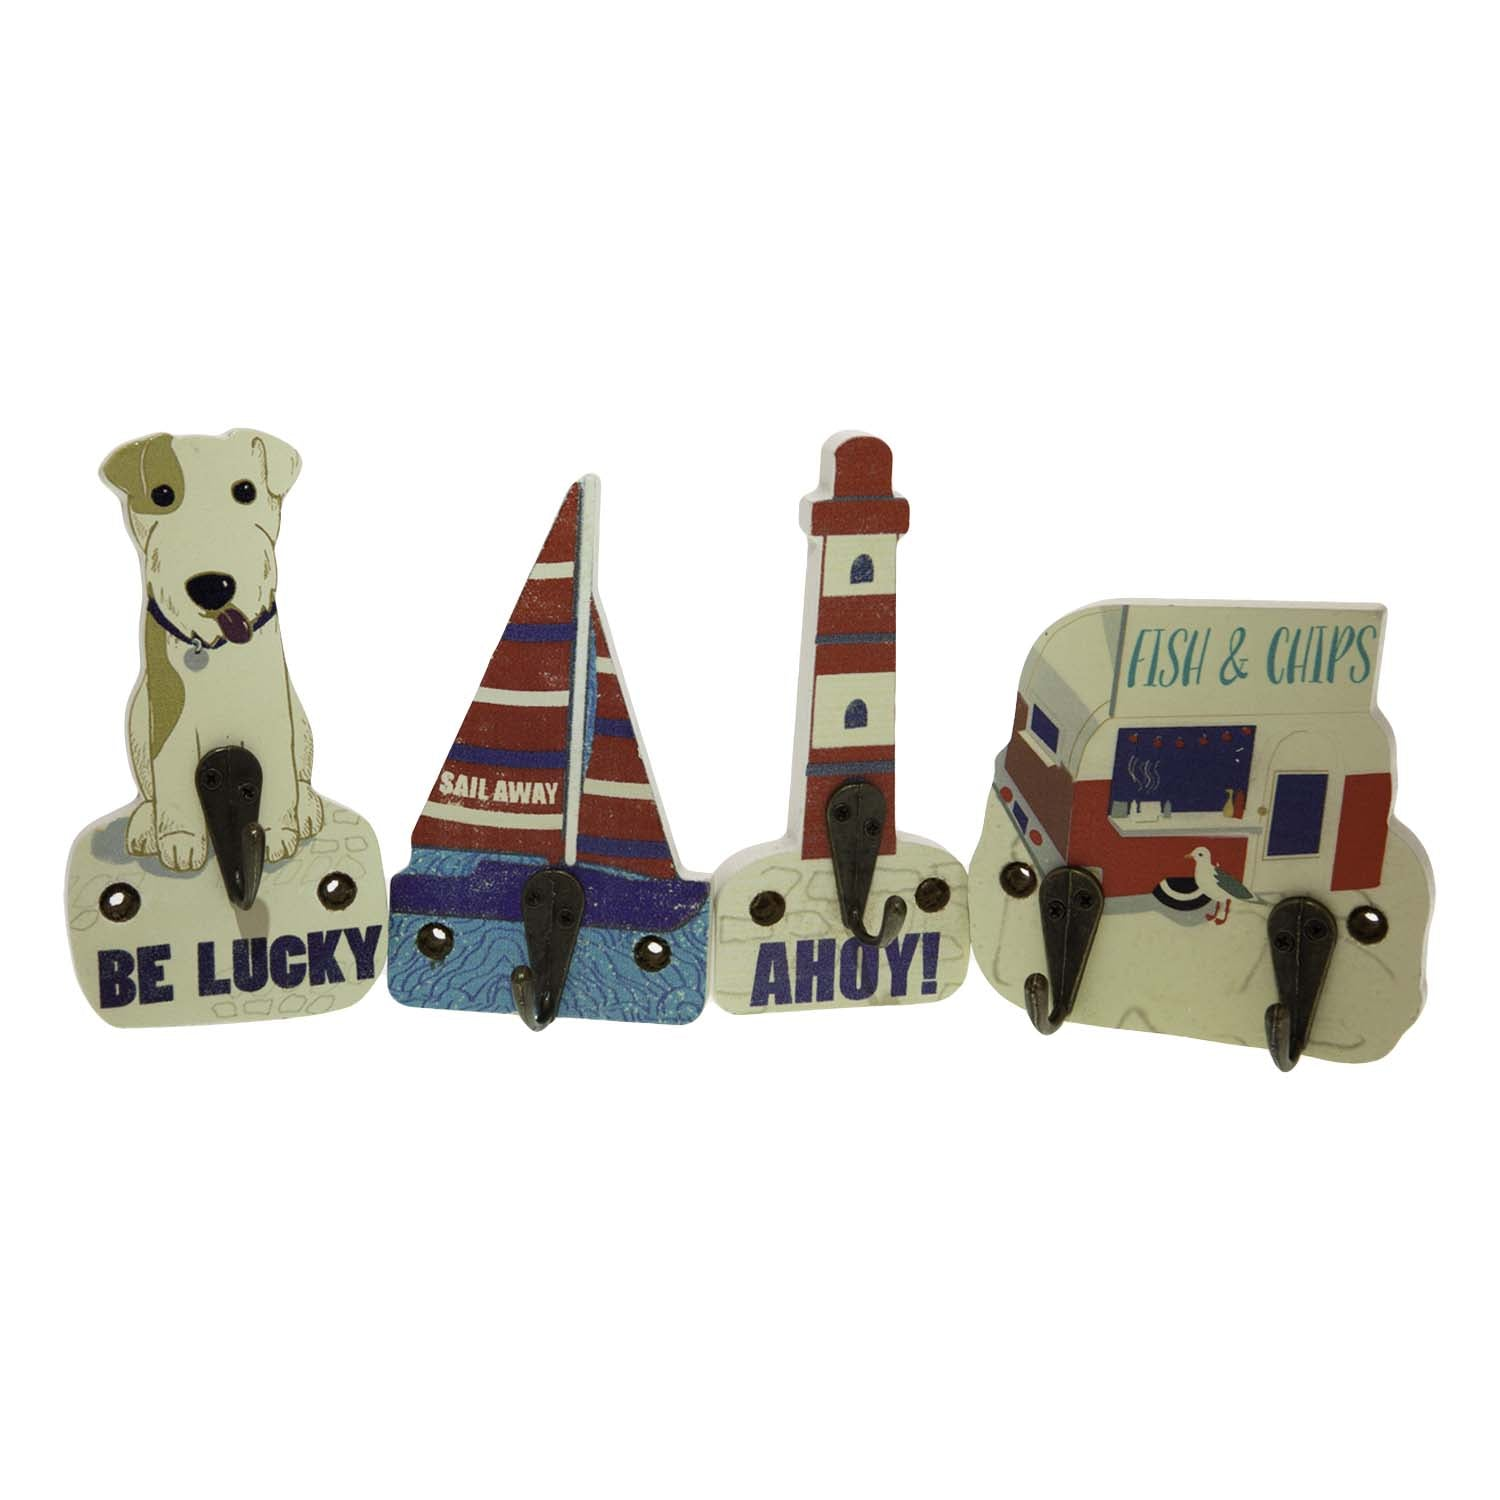 Dog Lover Gifts available at Dog Krazy Gifts – Jill White Rocket68 Ahoy Hooks Set of 4 available at www.dogkrazygifts.co.uk